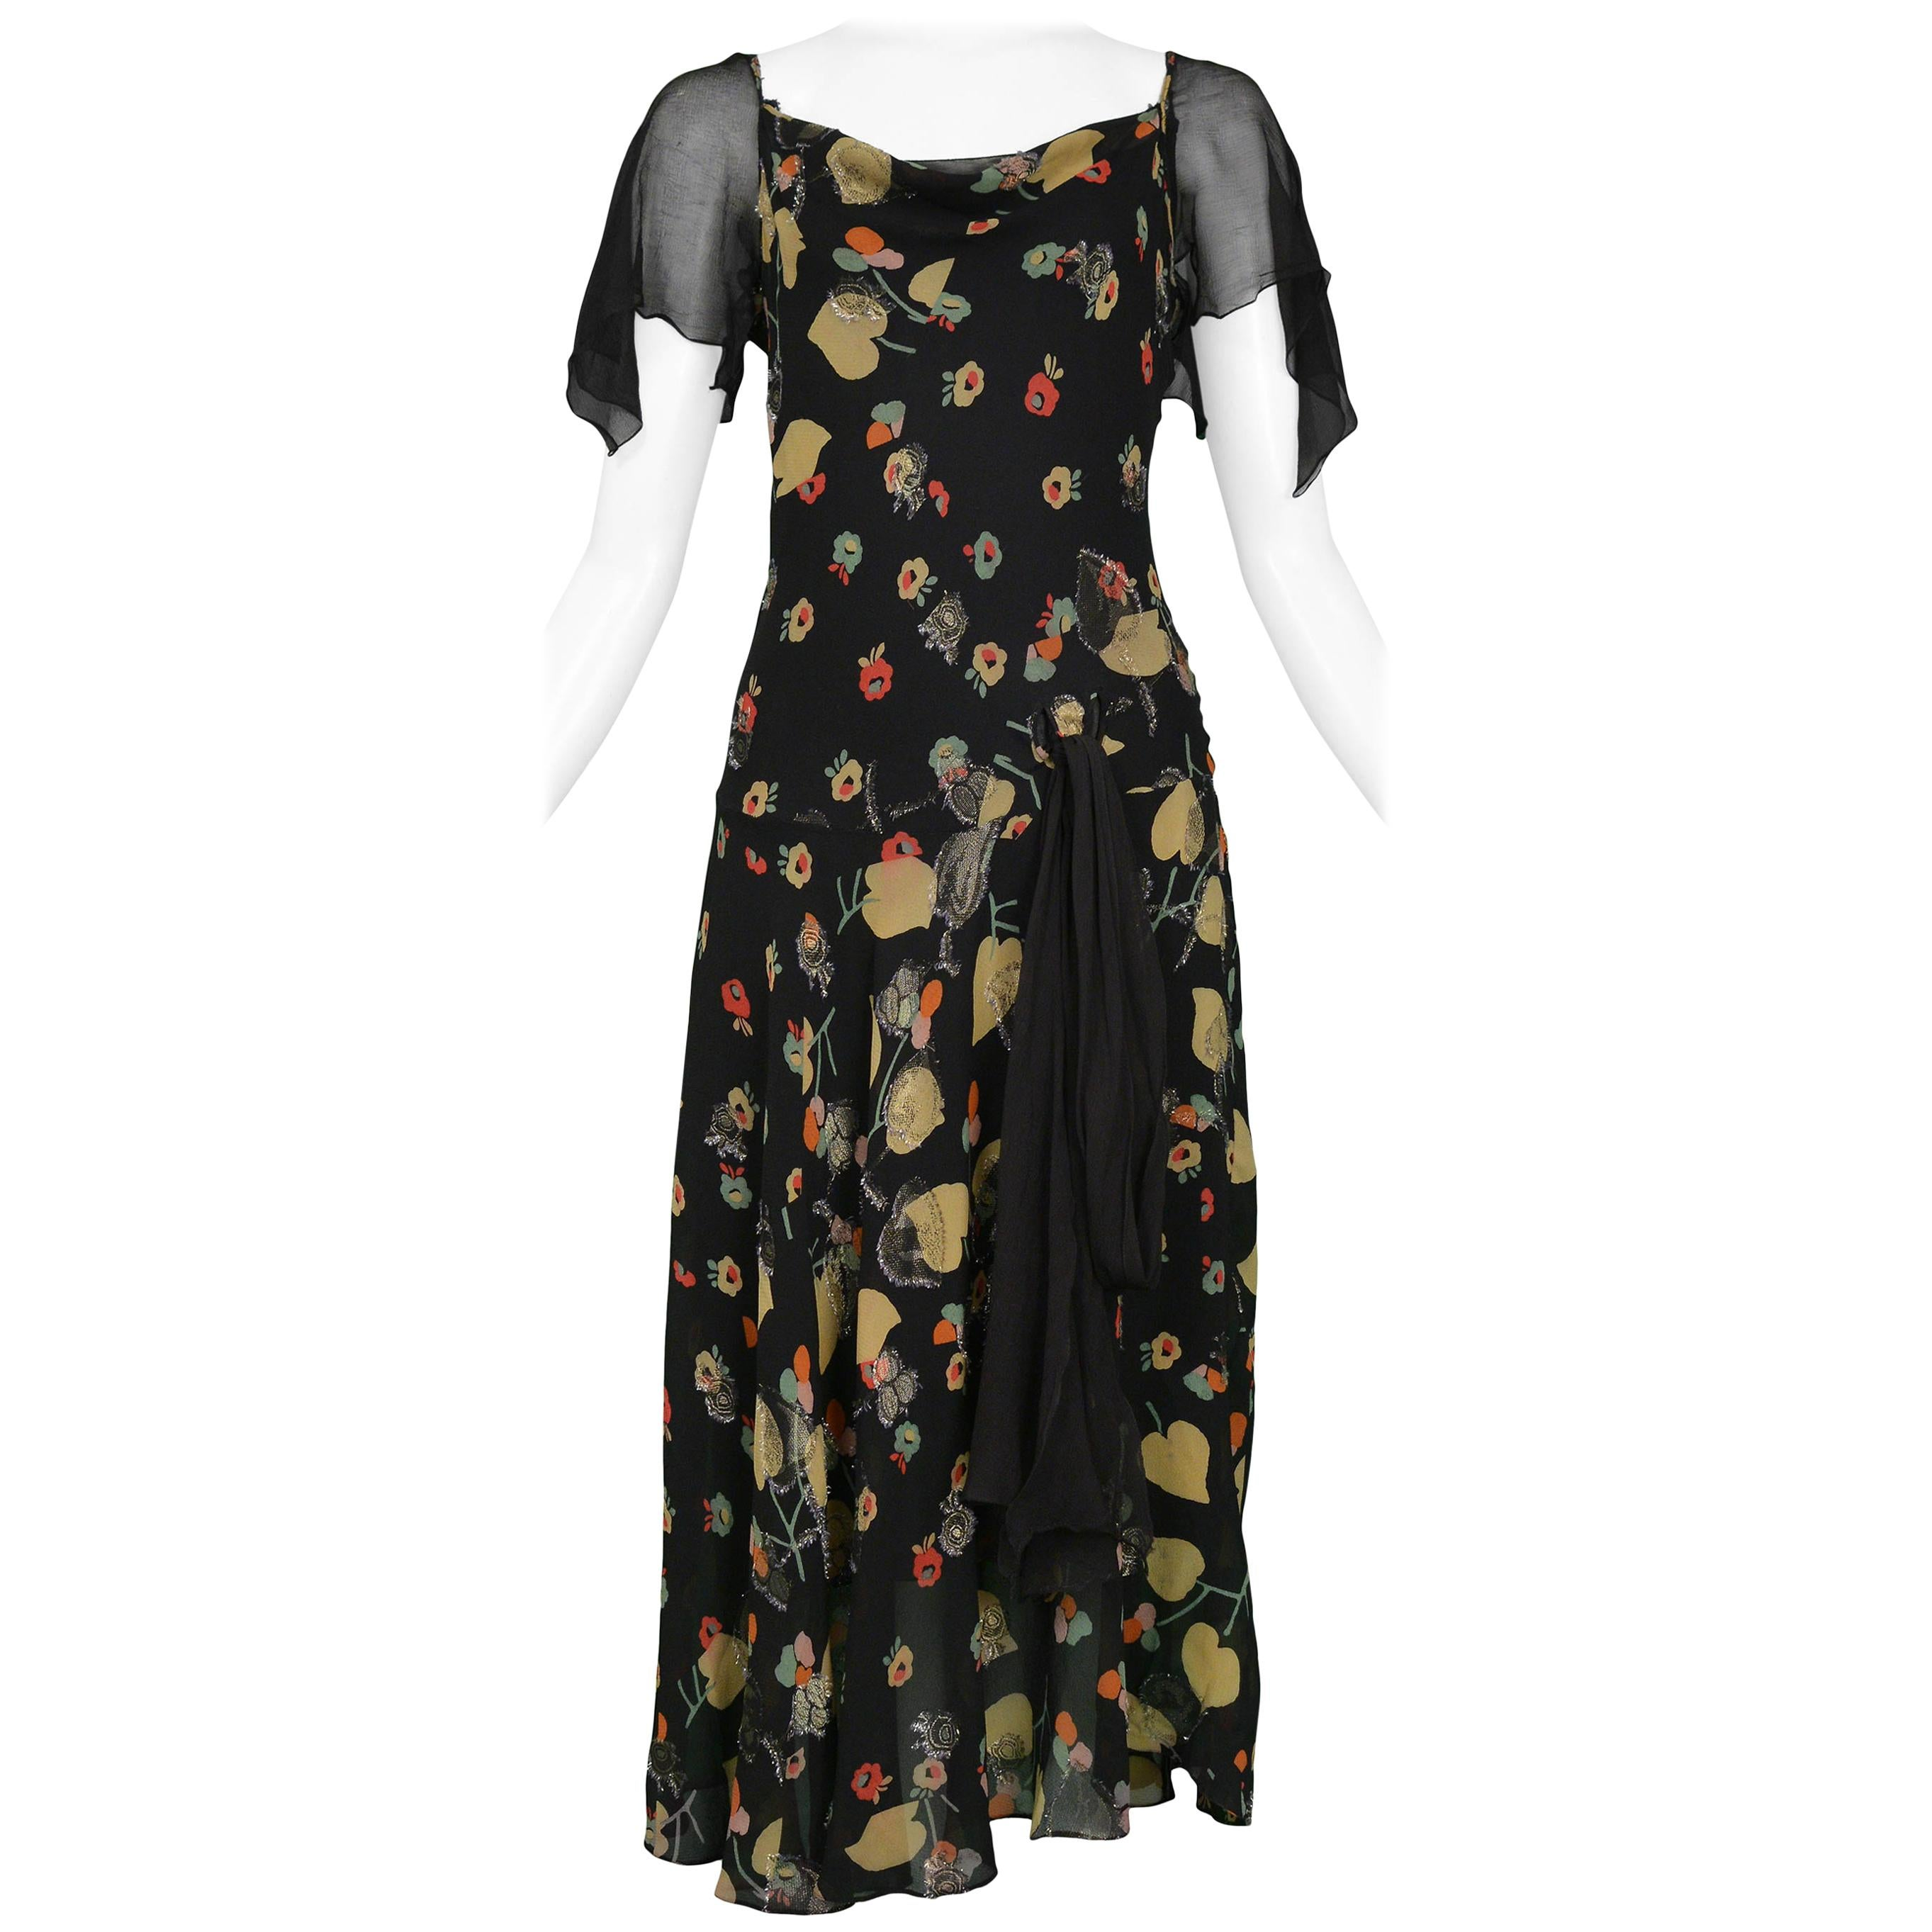 3cef456a6a598 Vintage Chanel Floral and Black Chiffon Dress at 1stdibs